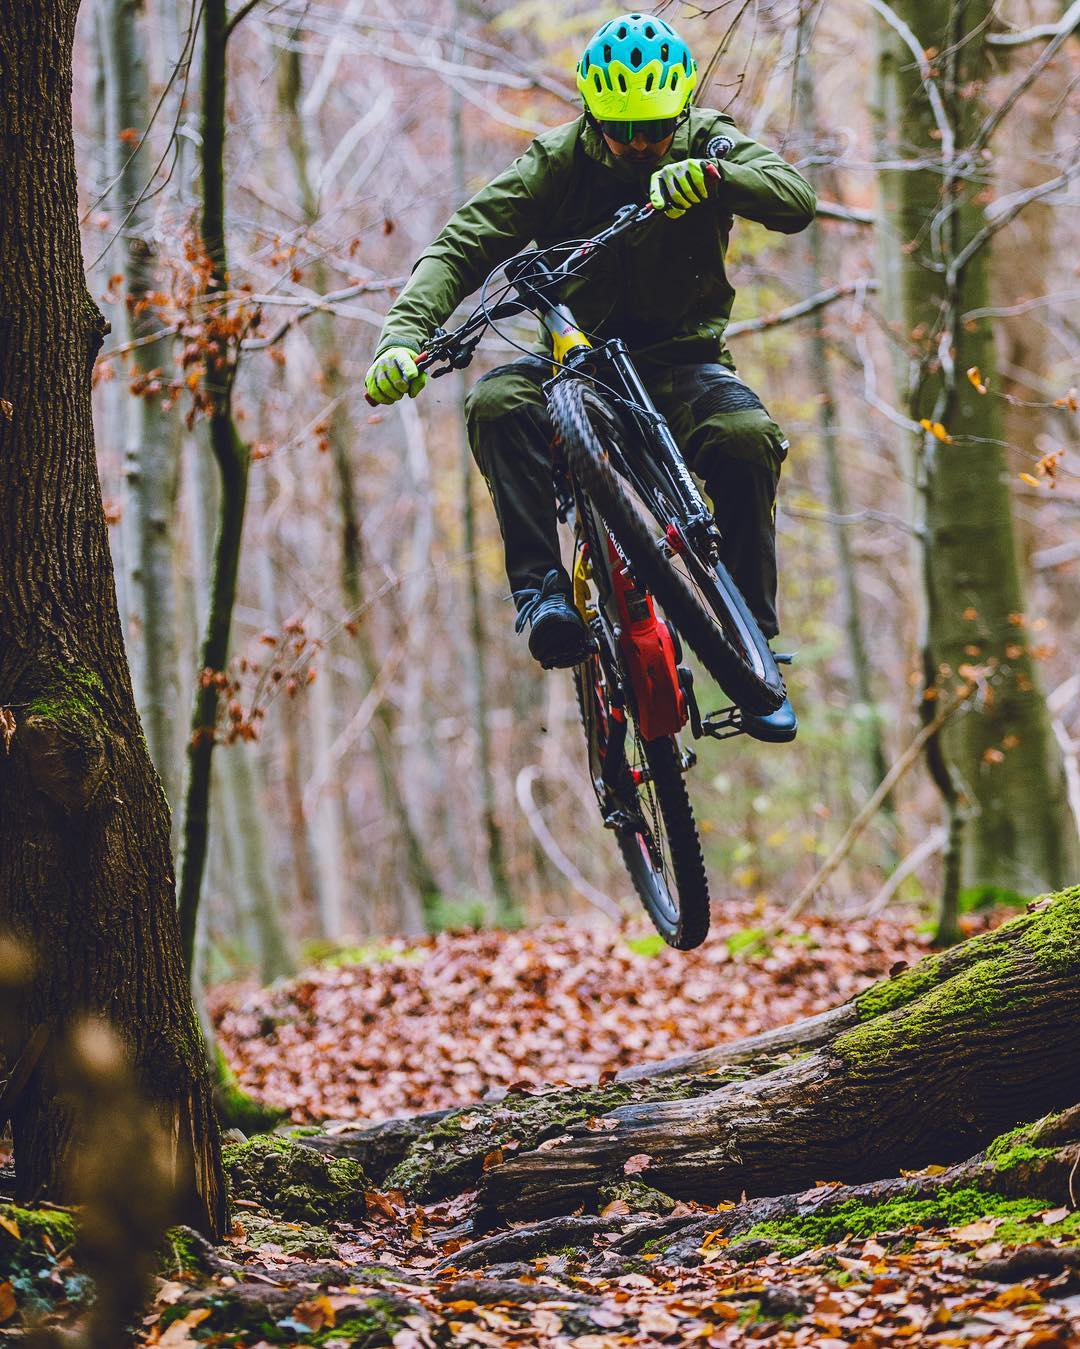 It's getting a little chilly out there right now in the Northern Hemisphere, and harder to find the motivation to ride, but as they say, fortune favours the brave! 📷 @hdc_m #xduro #nduro #mtb #emtb #ebike #enduro #ride100percent @tschugg23